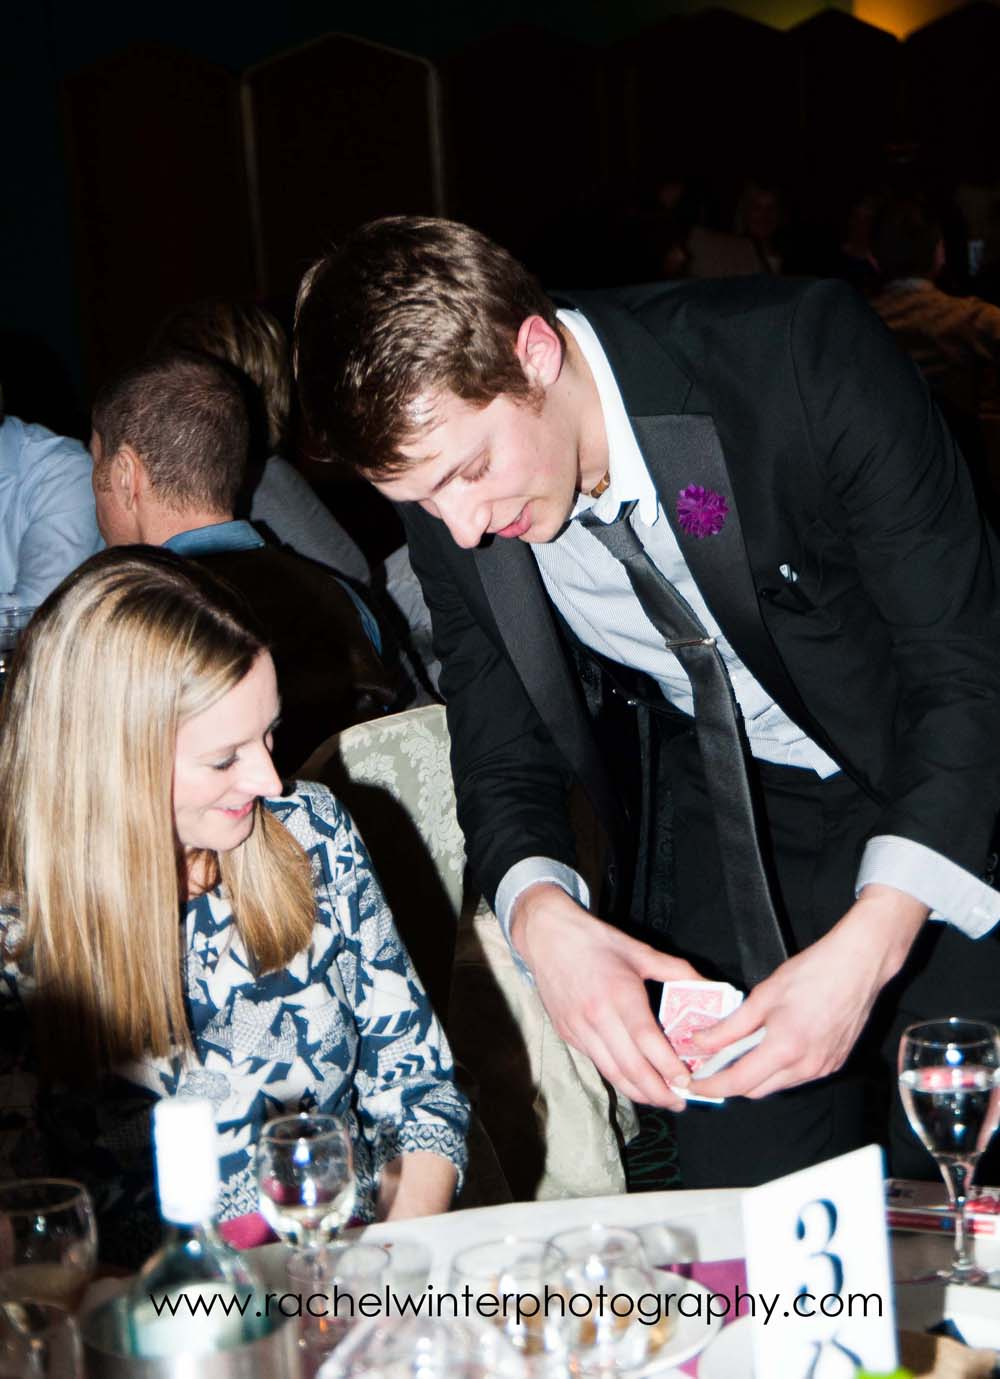 Performing close-up magic at the Castle Green Hotel, Kendal.